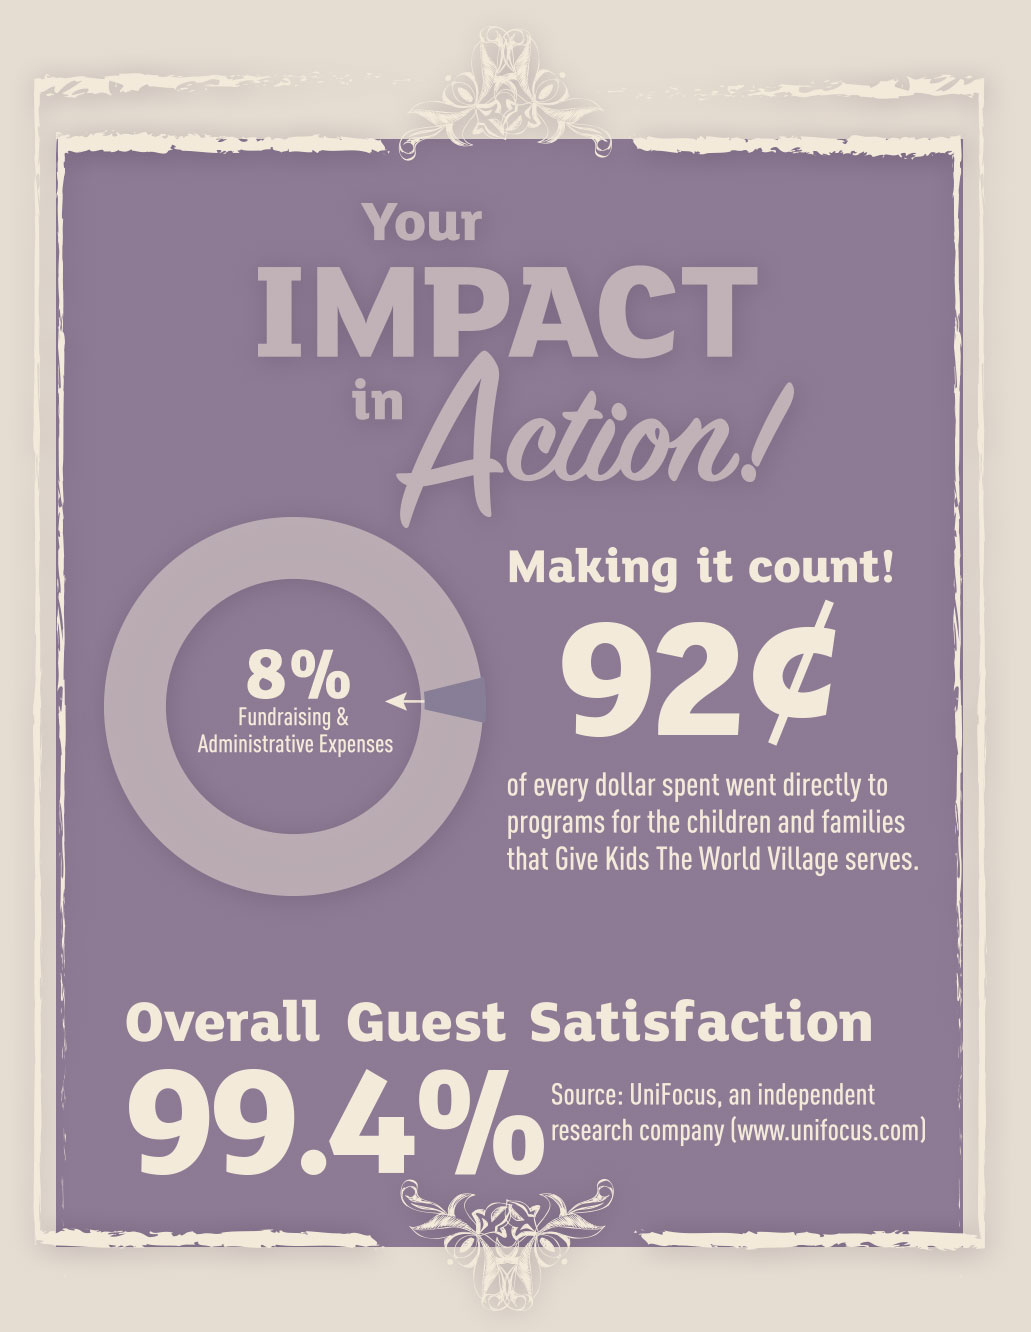 Your Impact in Action